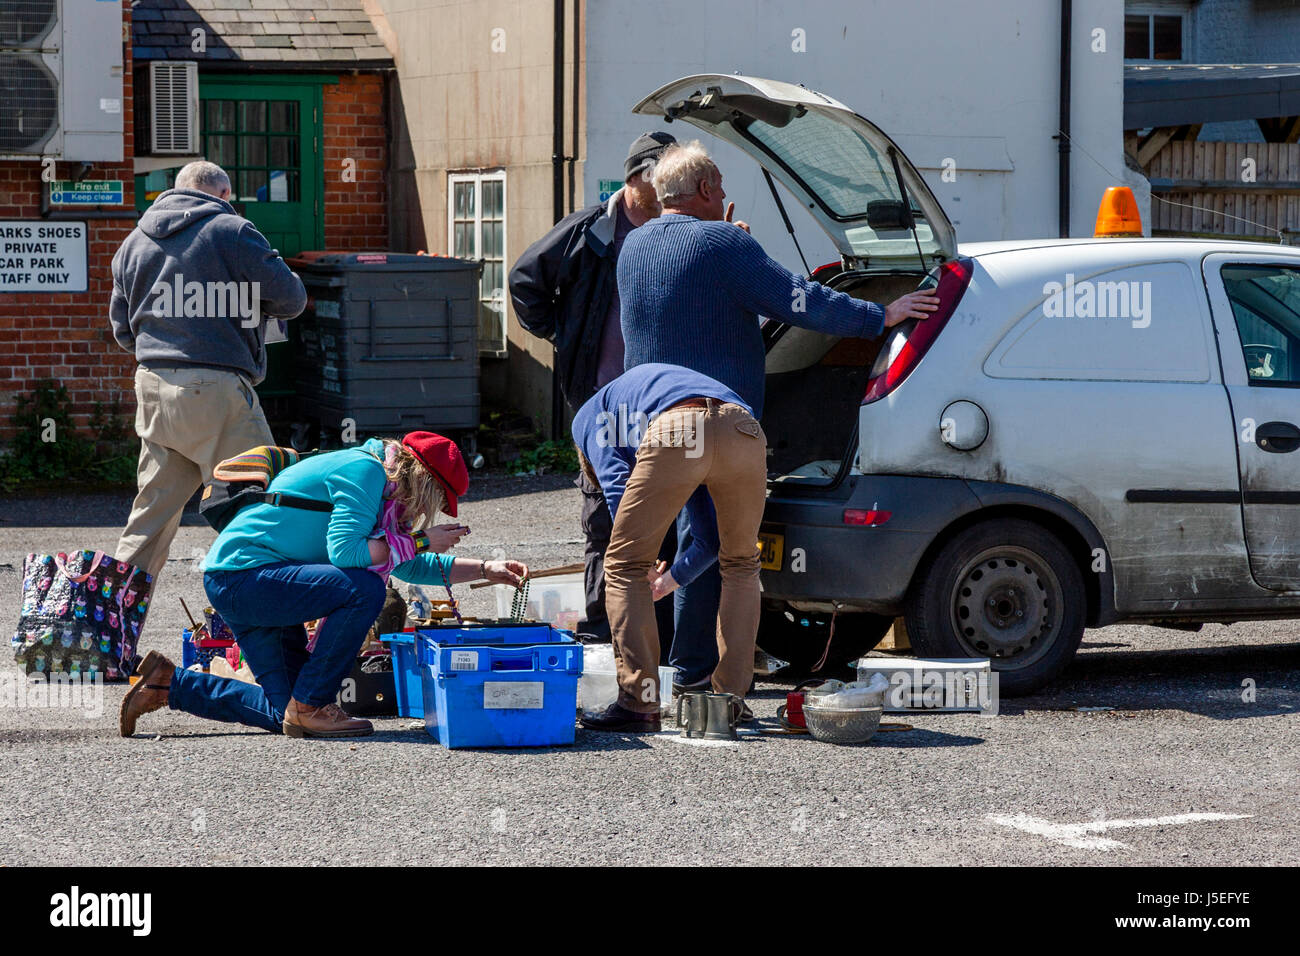 People Browsing Through Items At A Car Boot Sale, Lewes, East Sussex, UK - Stock Image